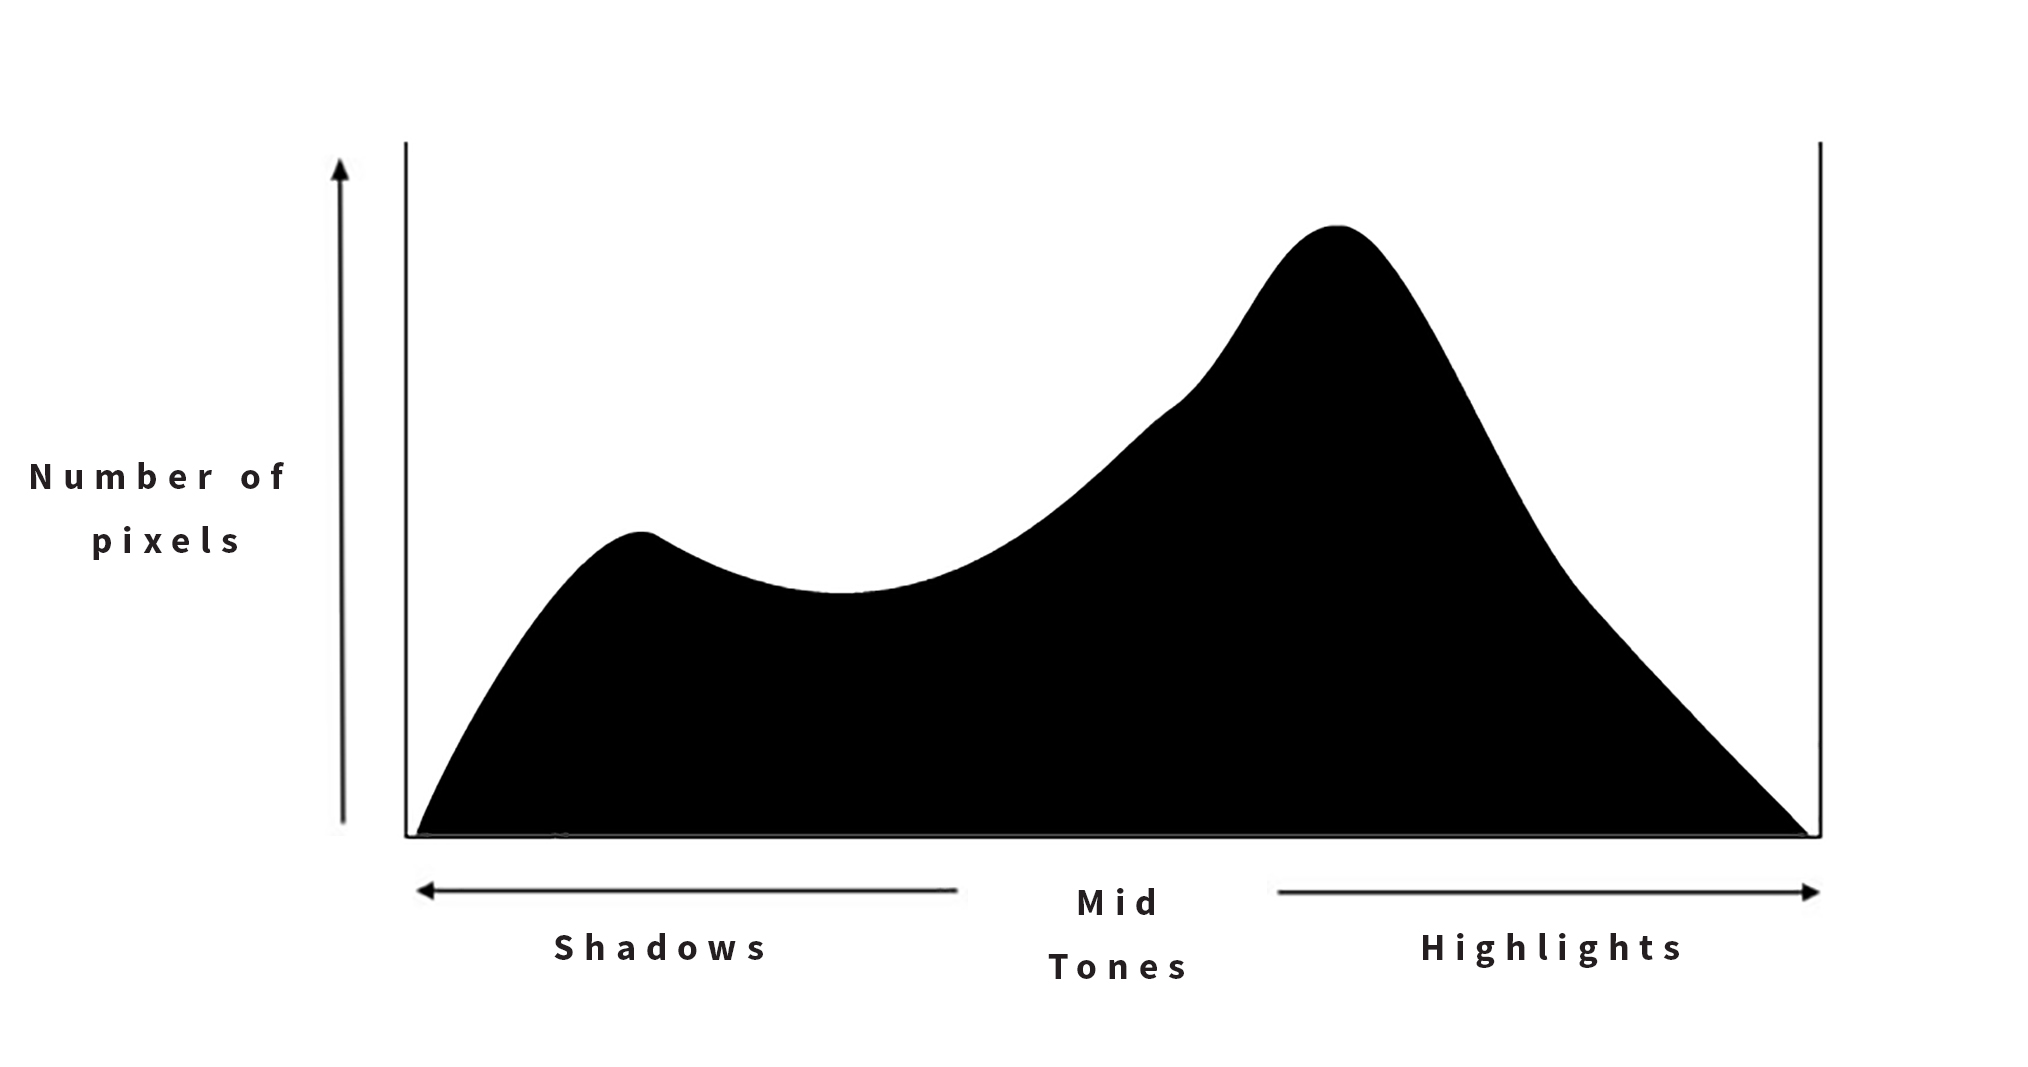 Histogram pushed to the right